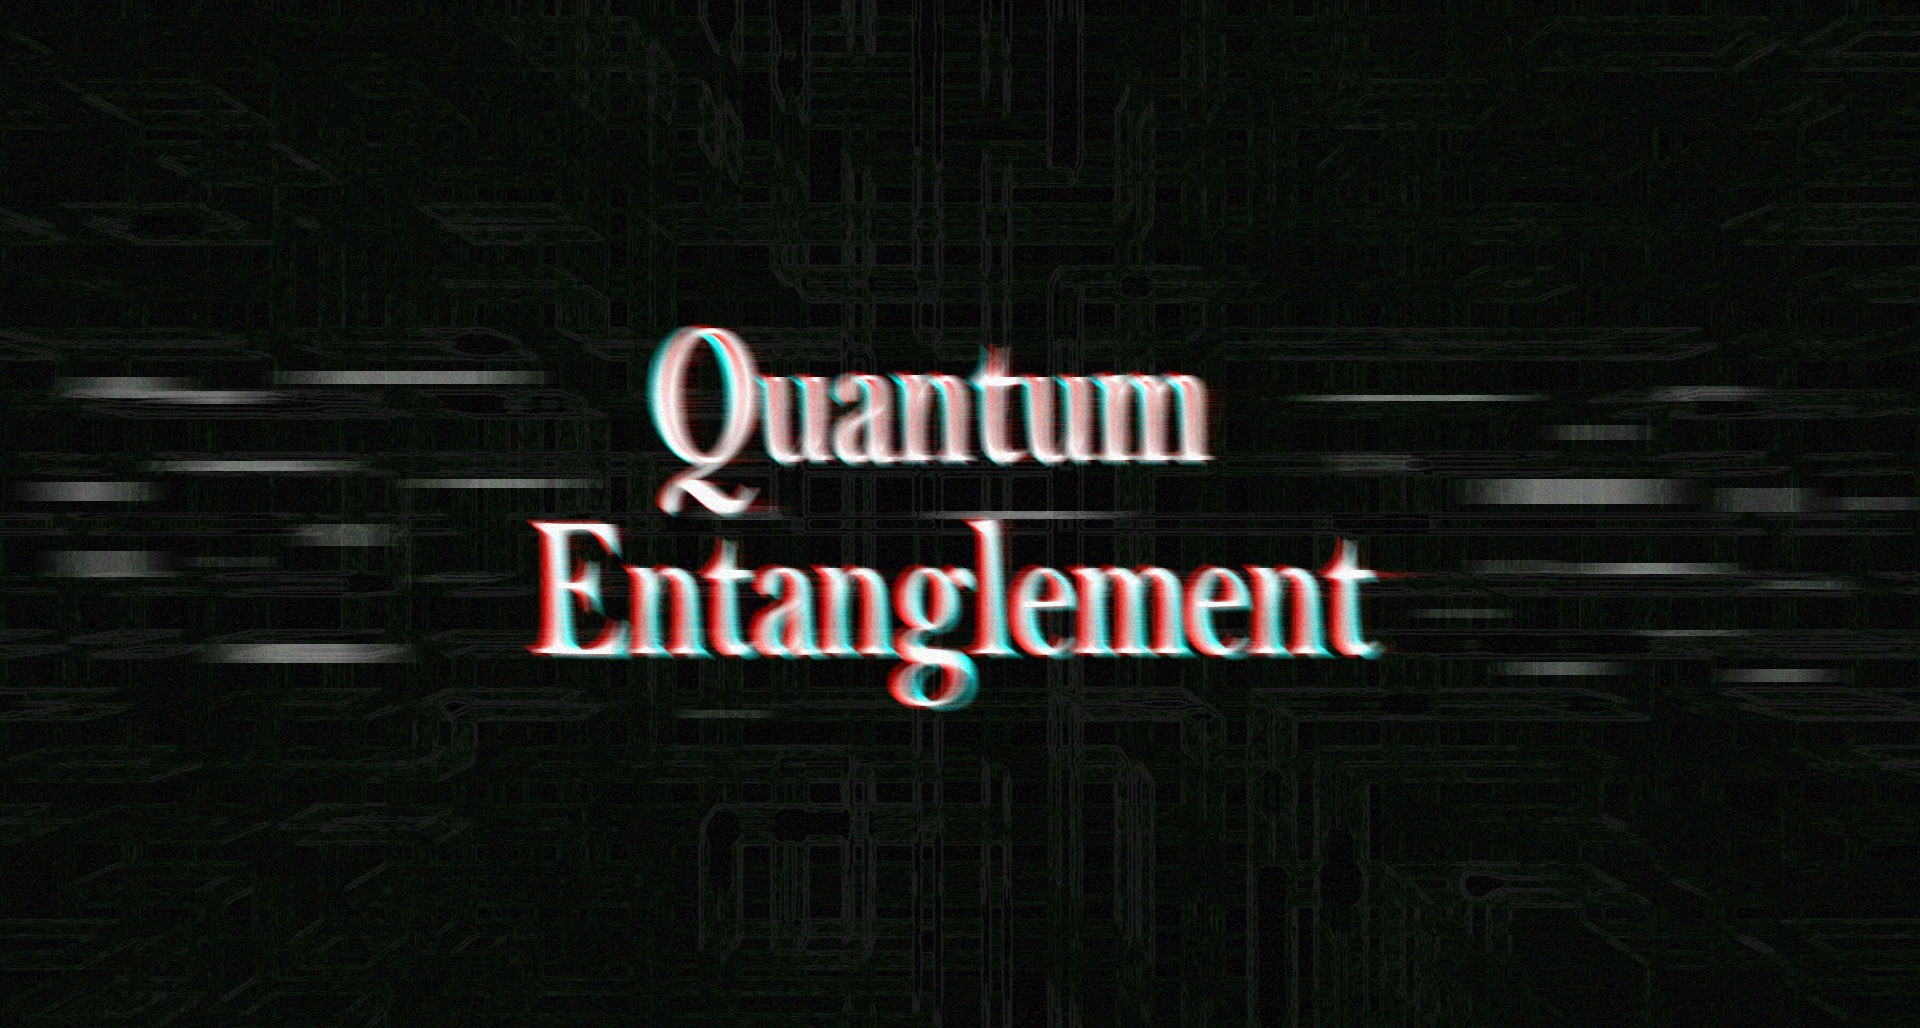 Quantum Entanglement Ralph K Jones Book Series